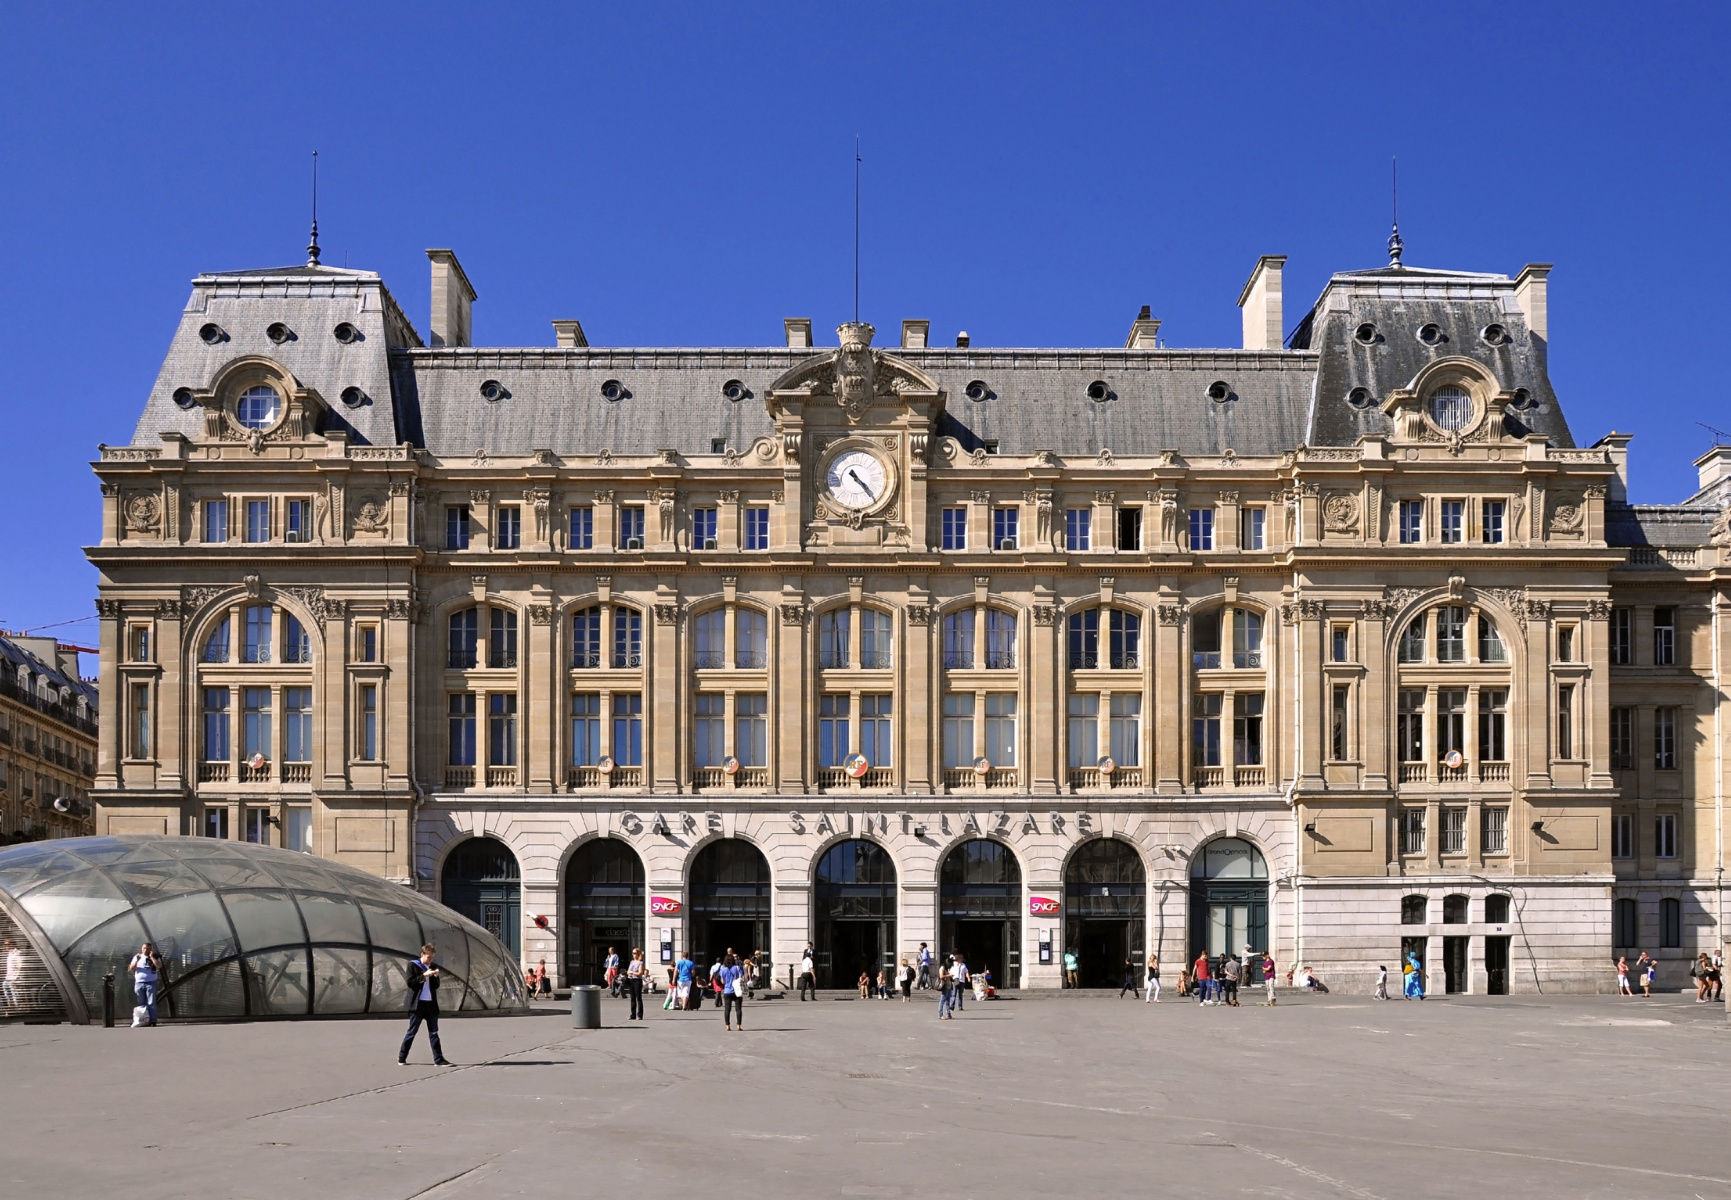 The Musée Art Ludique to open in 2021 at Gare Saint-Lazare